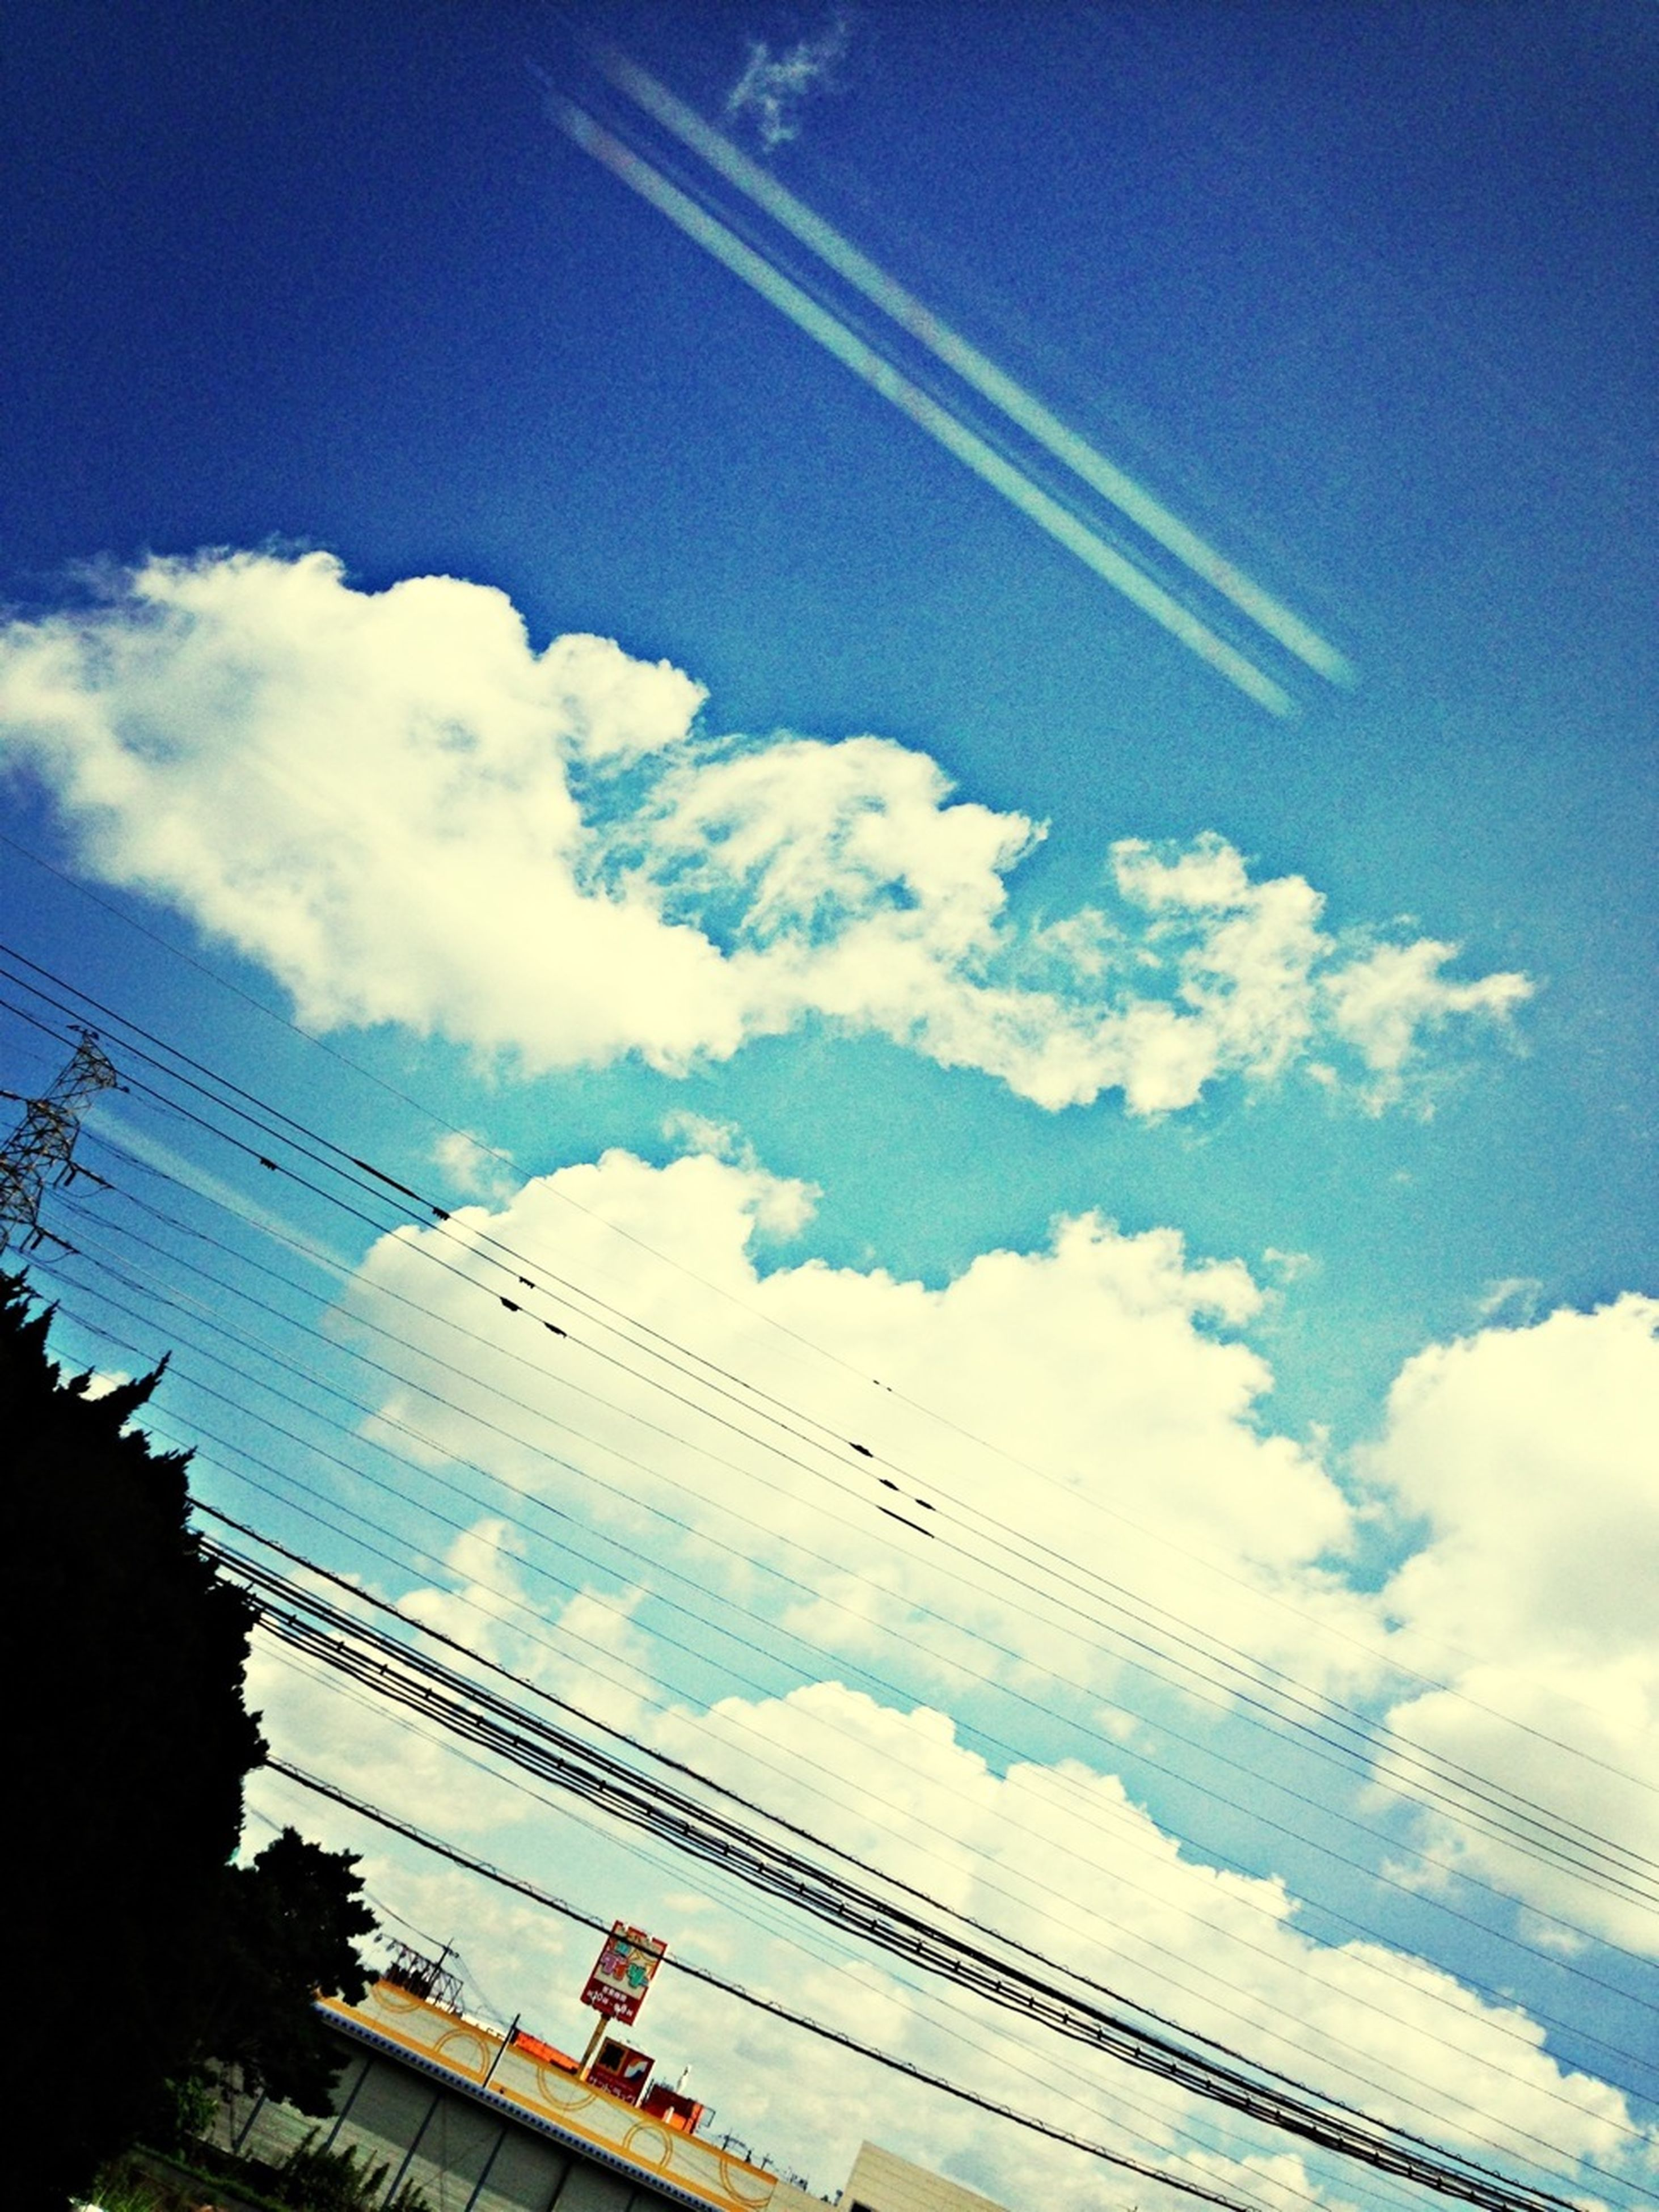 sky, low angle view, power line, connection, electricity pylon, cable, cloud - sky, bird, blue, transportation, animal themes, flying, silhouette, cloud, electricity, nature, power cable, power supply, day